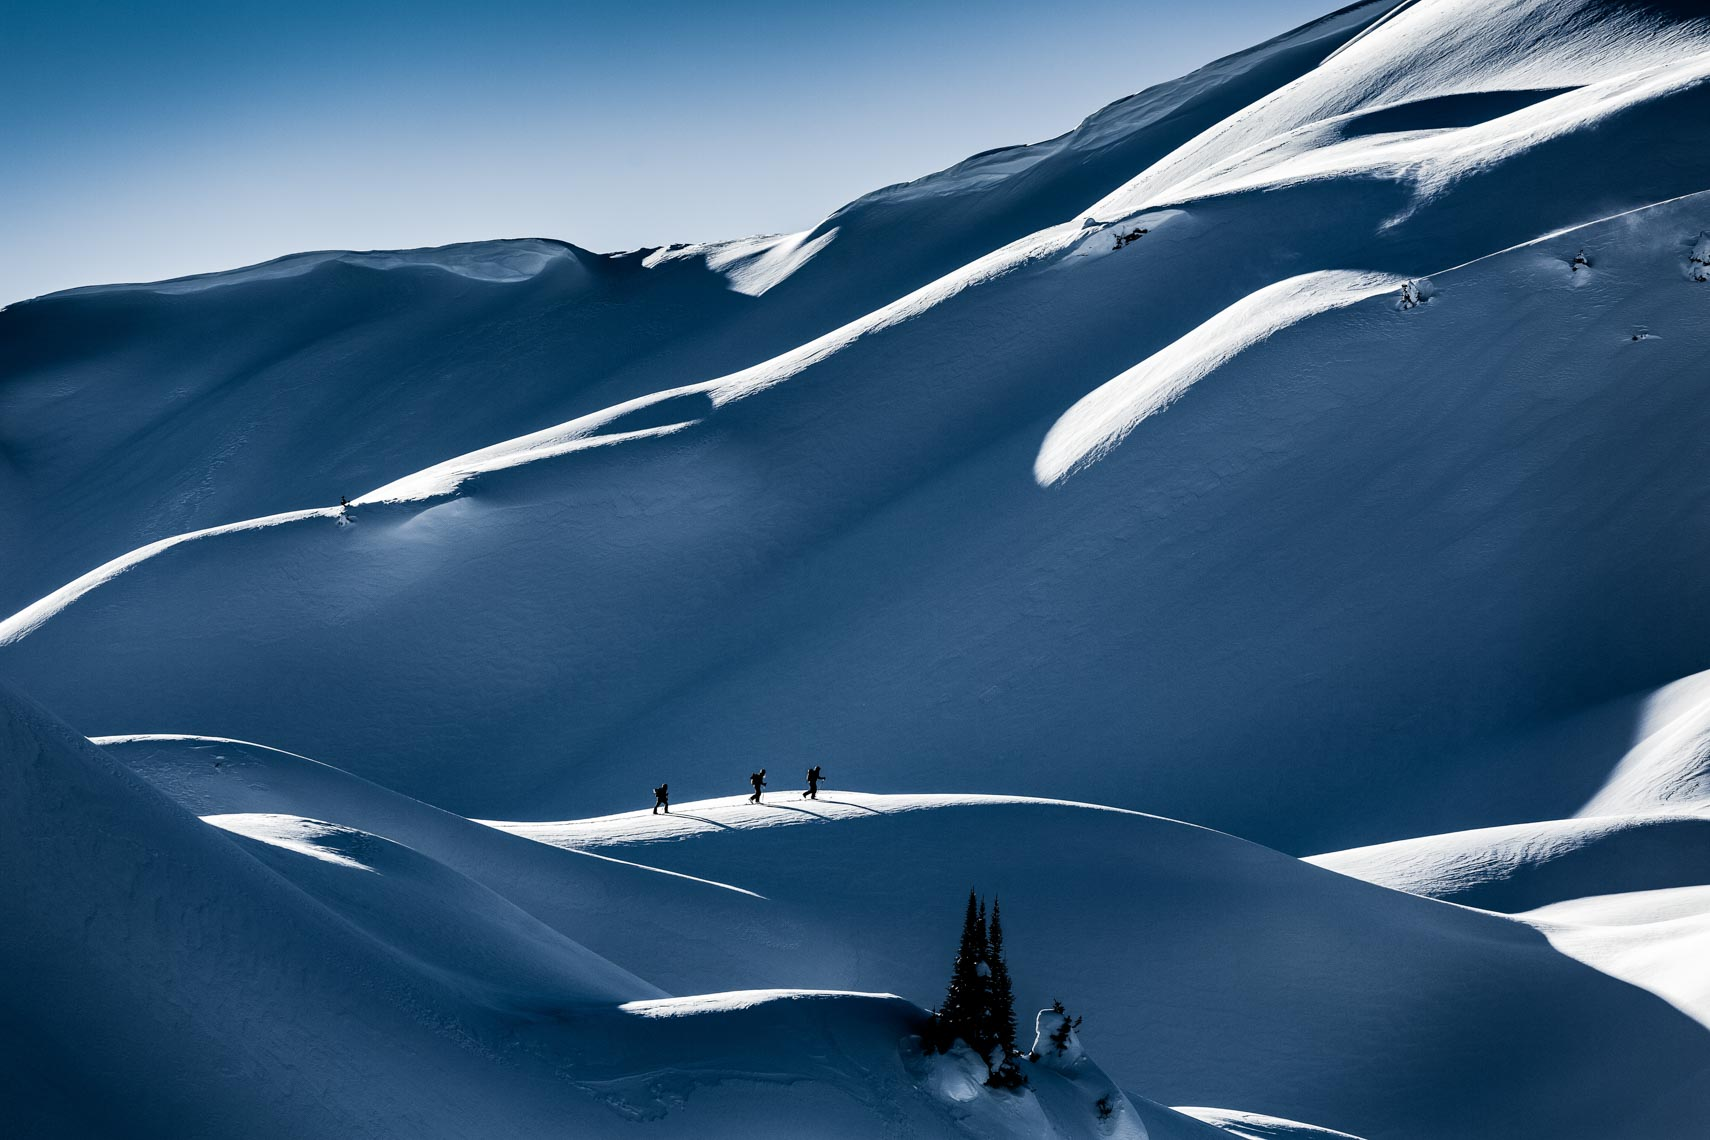 Pro skier ski touring landscape photography by Whistler ski photographer